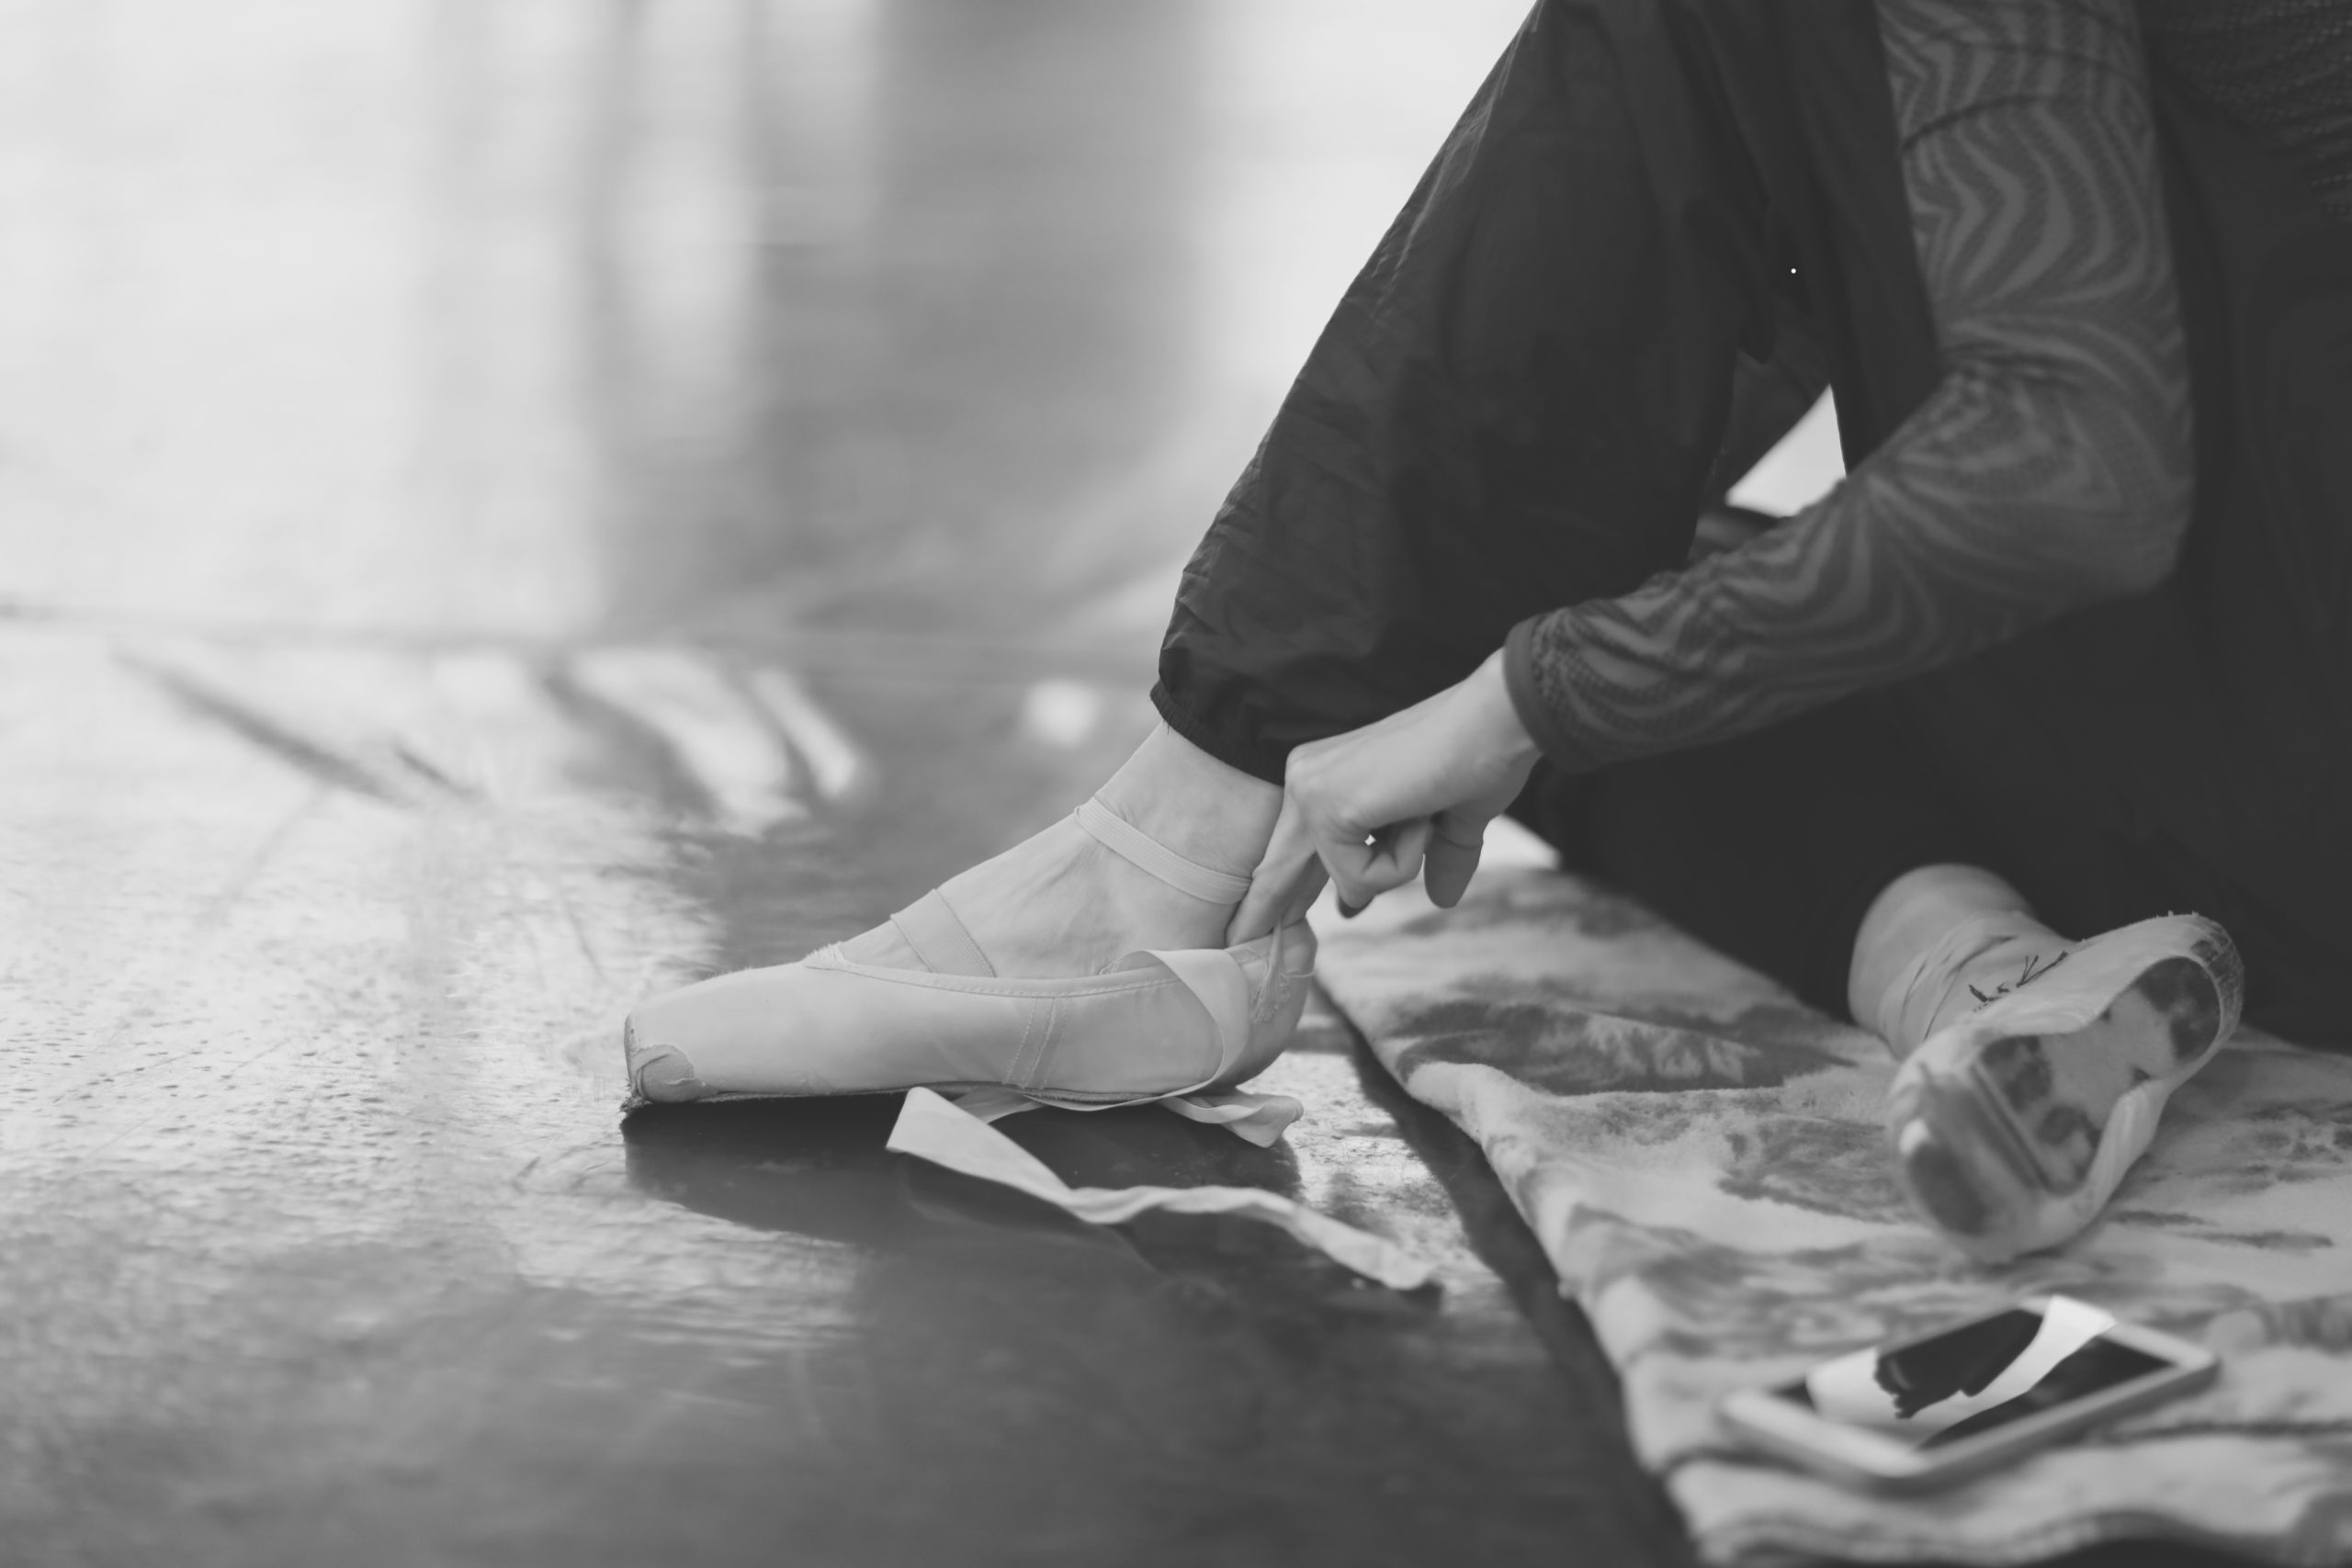 A ballerina sits on the floor in the theater's rehearsal hall and puts on pointe shoes.